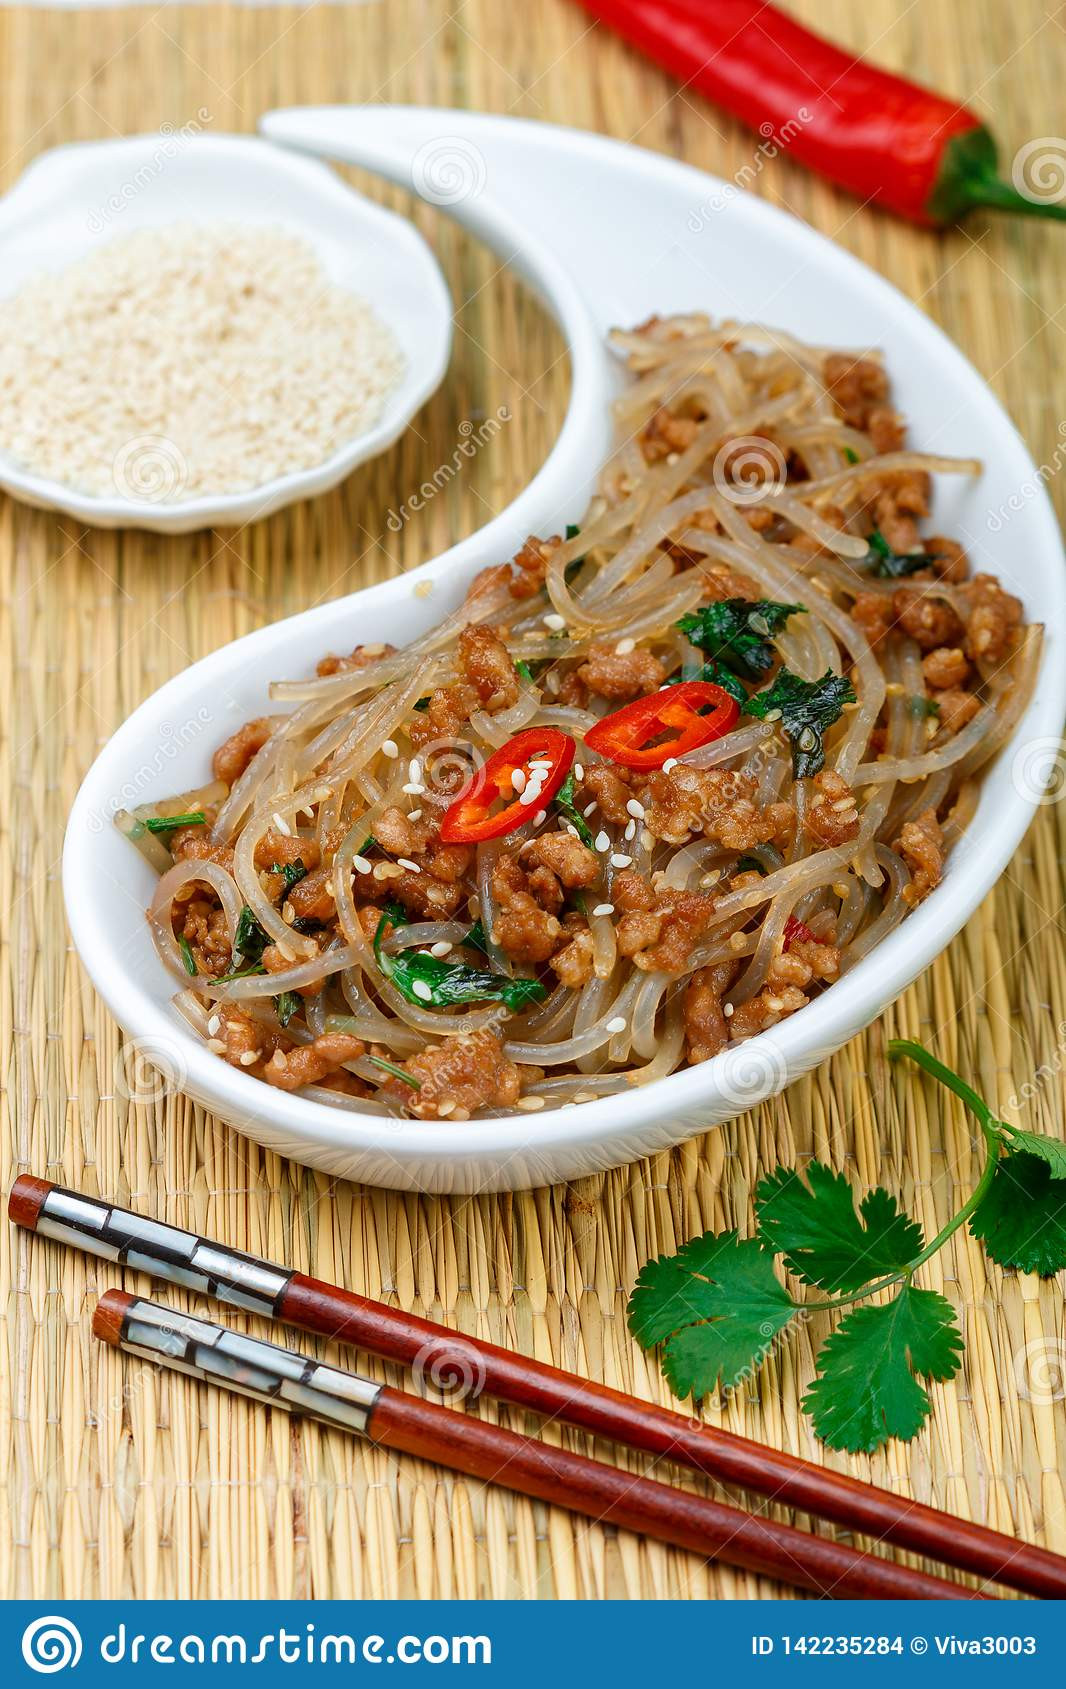 Chinese Dish Of Starch Glass Noodles Rice, Potatoes, Beans